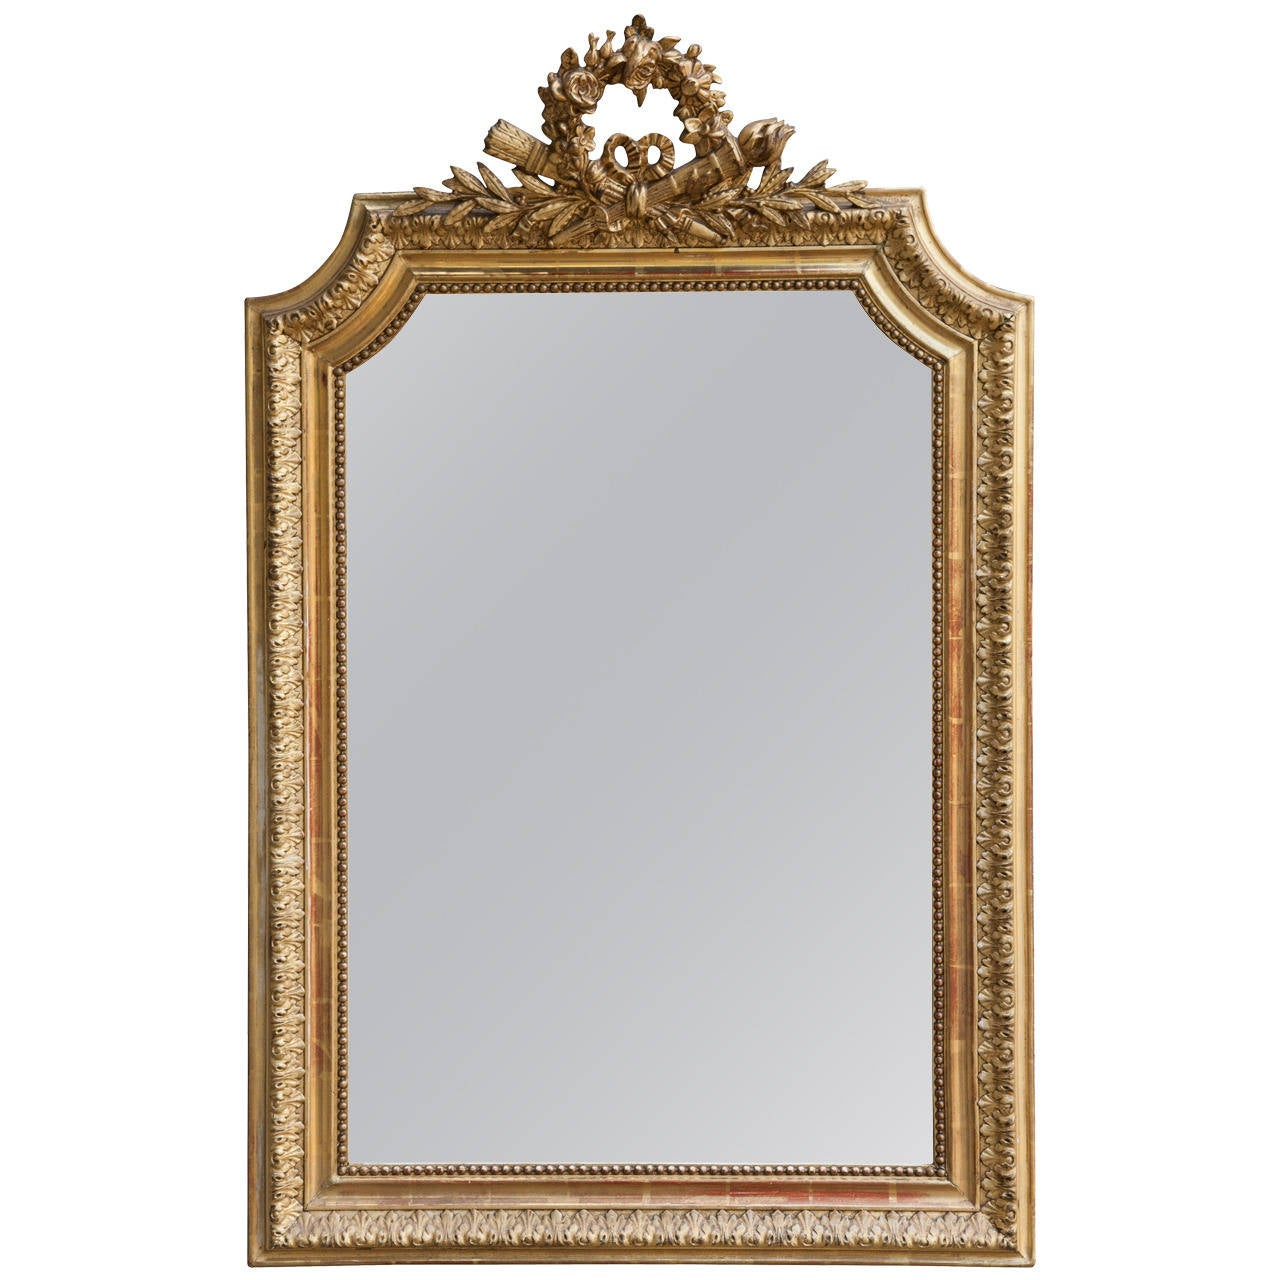 French louis xvi style 19th century gold gilt mirror at for Gold wall mirror